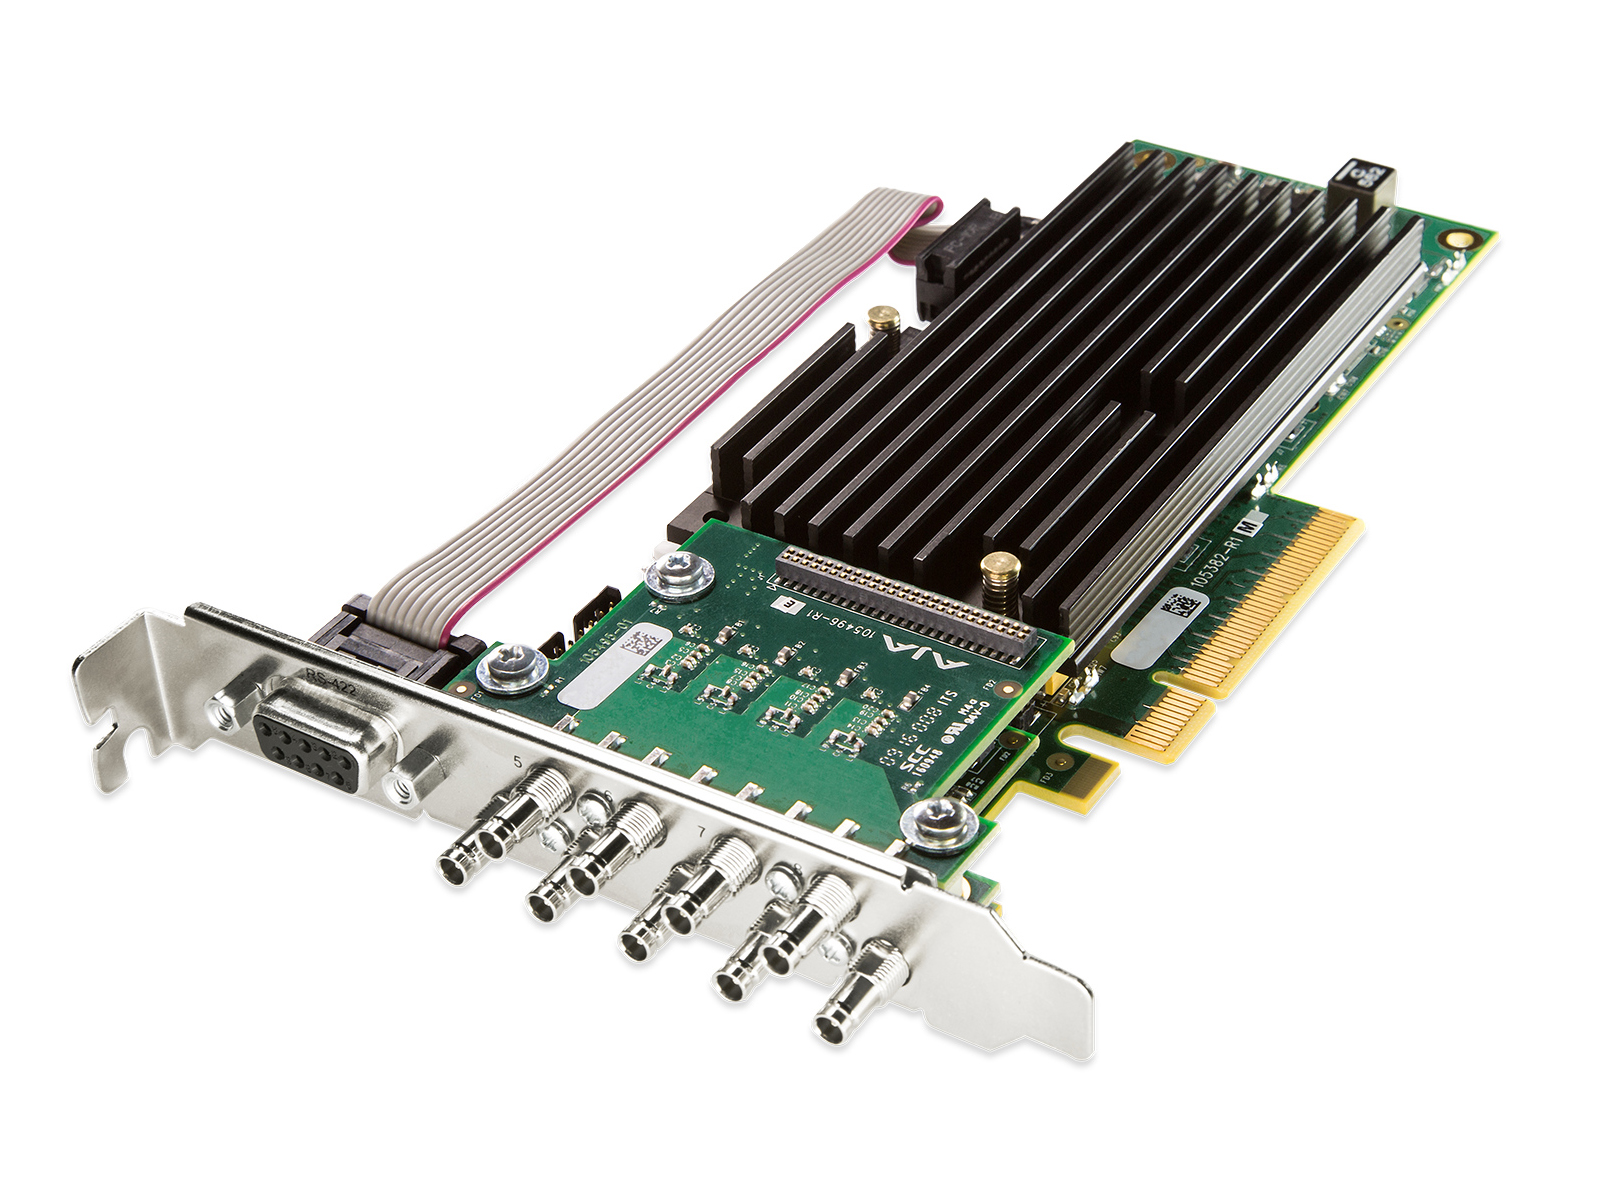 AJA CRV88-9-T-NCF Corvid 88 with standard profile PCIe bracket and passive heat sink/no cables